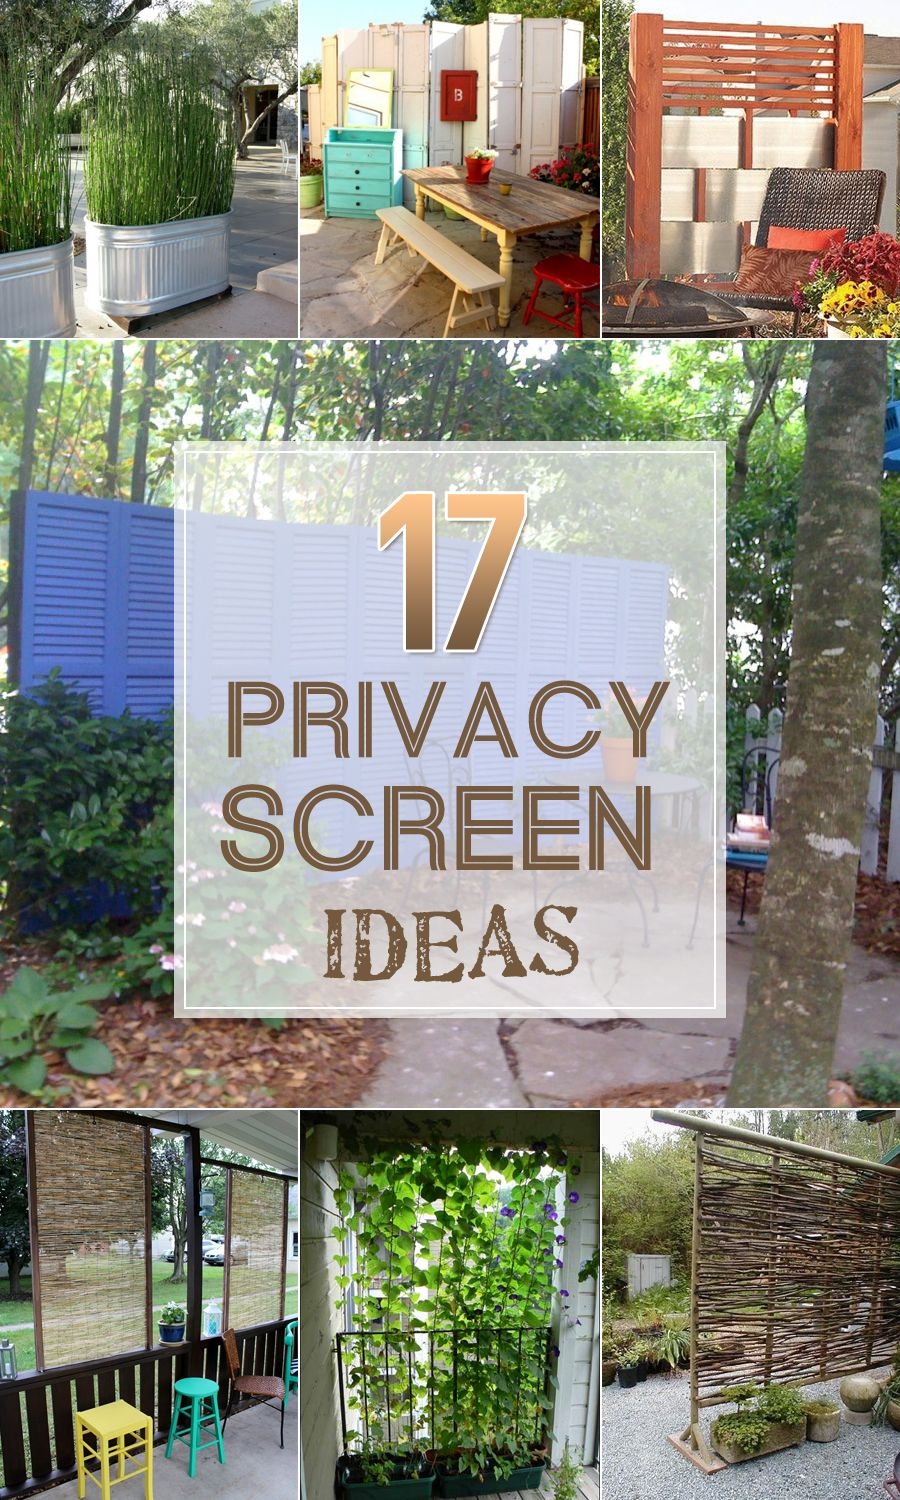 Backyard Privacy Ideas 22 fascinating and low budget ideas for your yard and patio privacy 17 Privacy Screen Ideas Thatll Keep Your Neighbors From Snooping